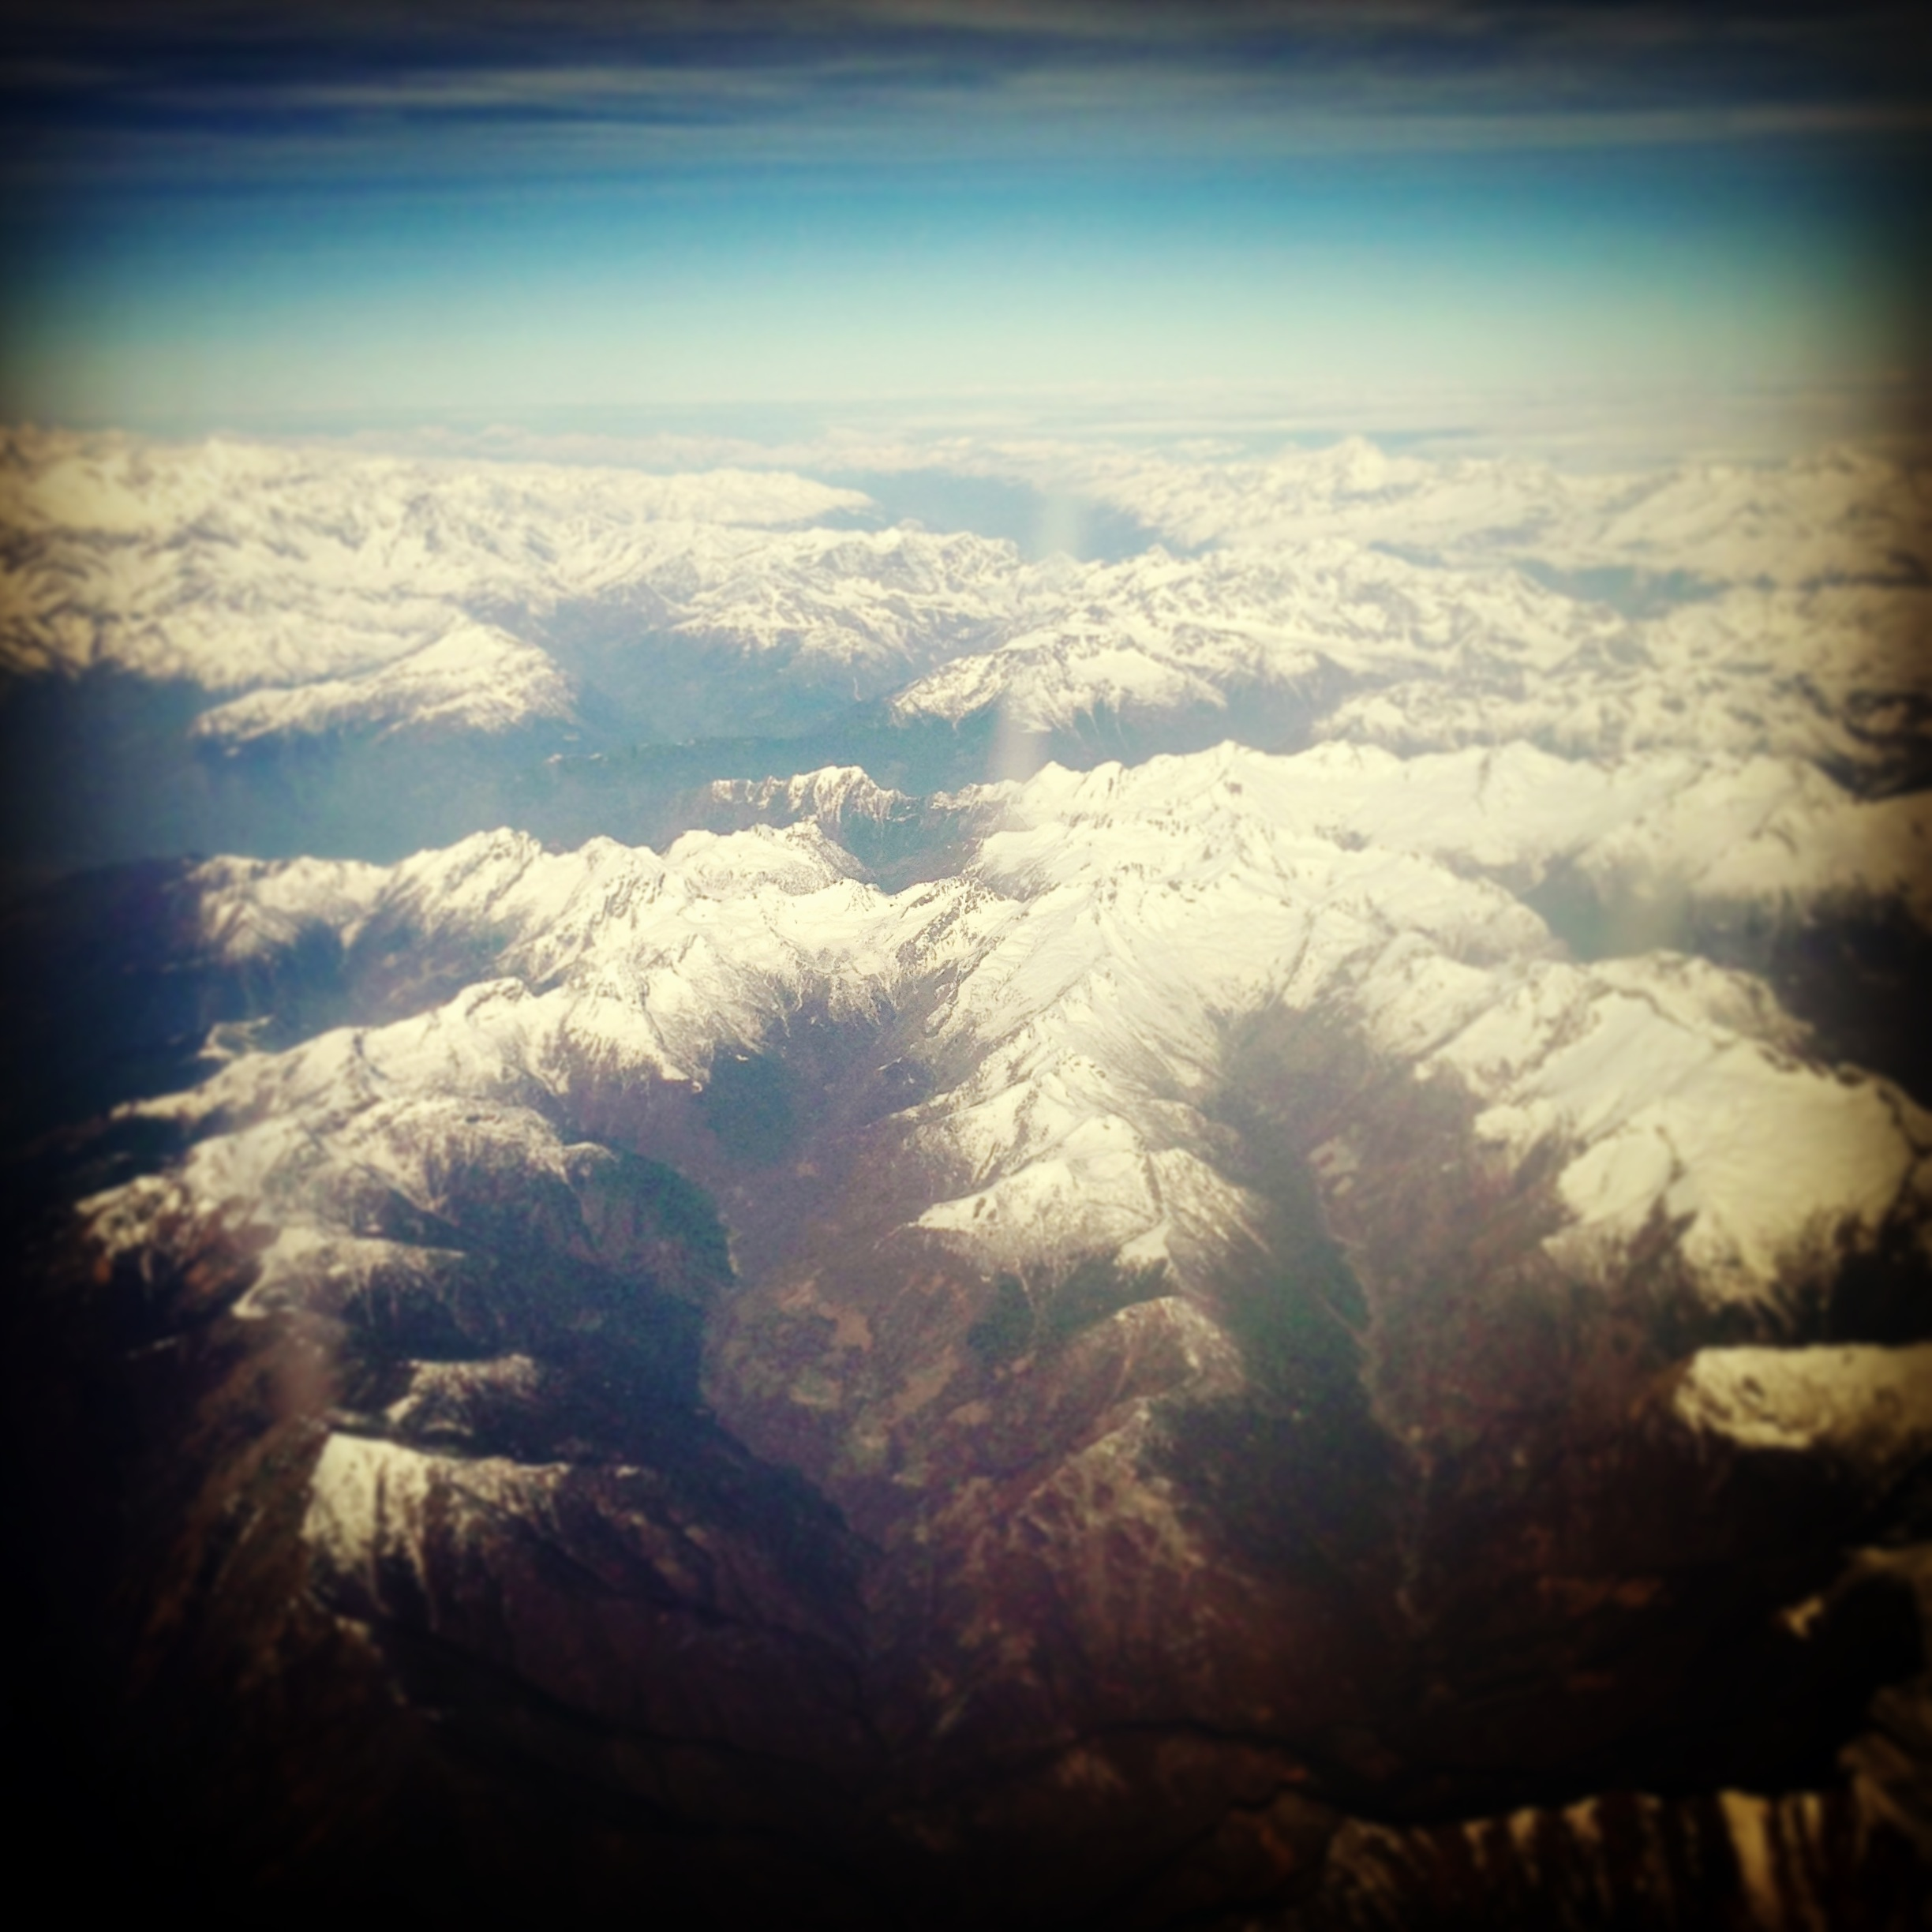 A. Why yes, they are. Camera phone pic taken while flying over the Alps from Germany into Milan.